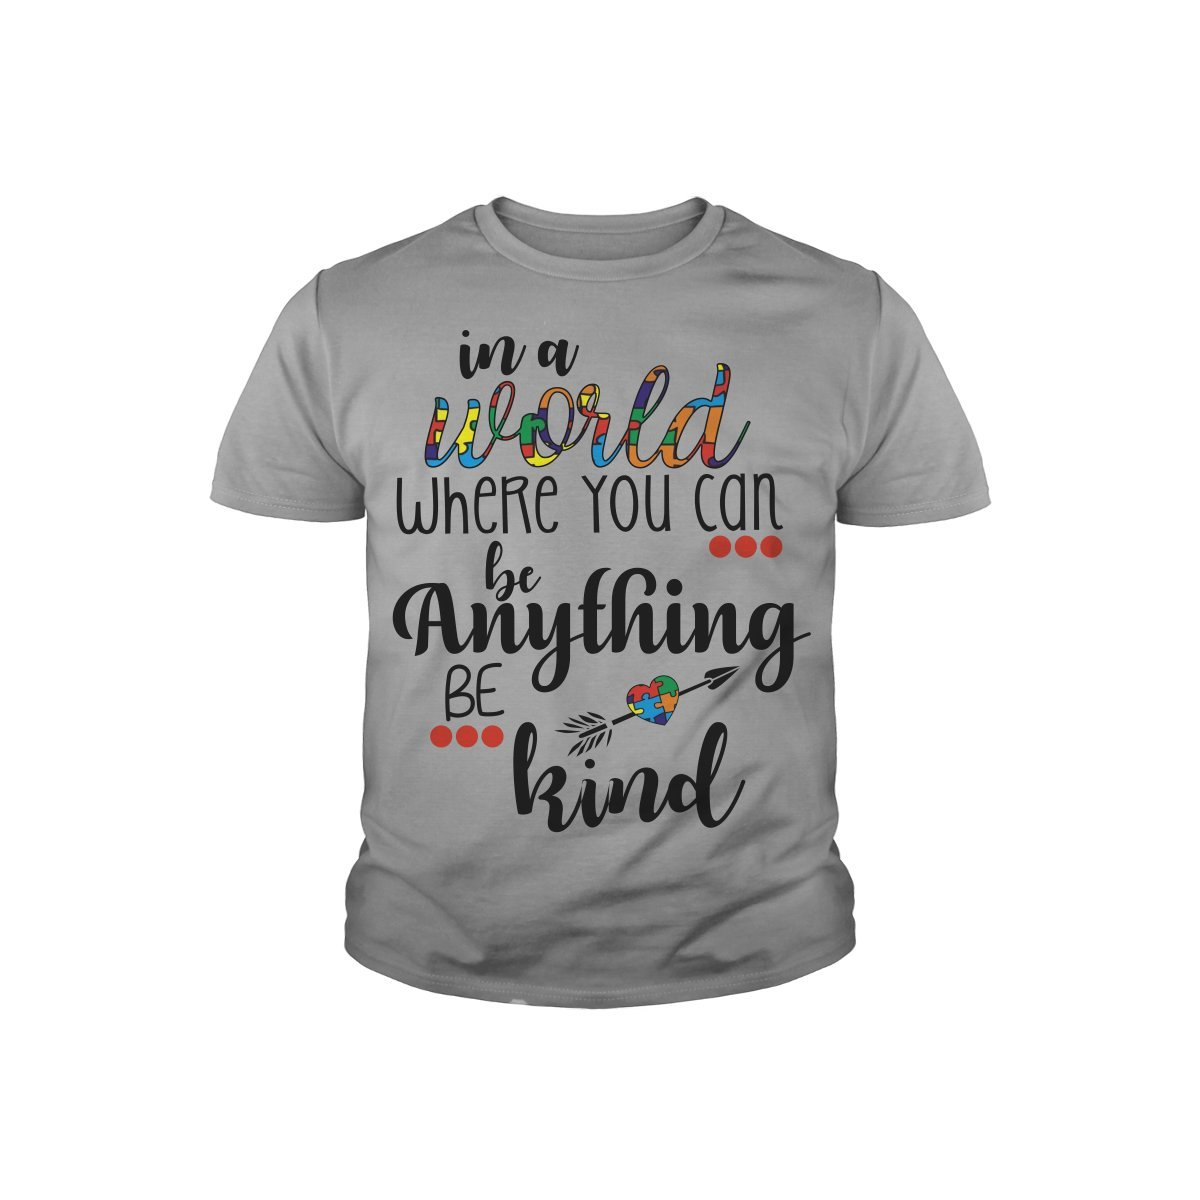 Youth Tee Sports Grey Large Sleeky in a World Where You can be Anything be Kind Autism Awareness TShirt